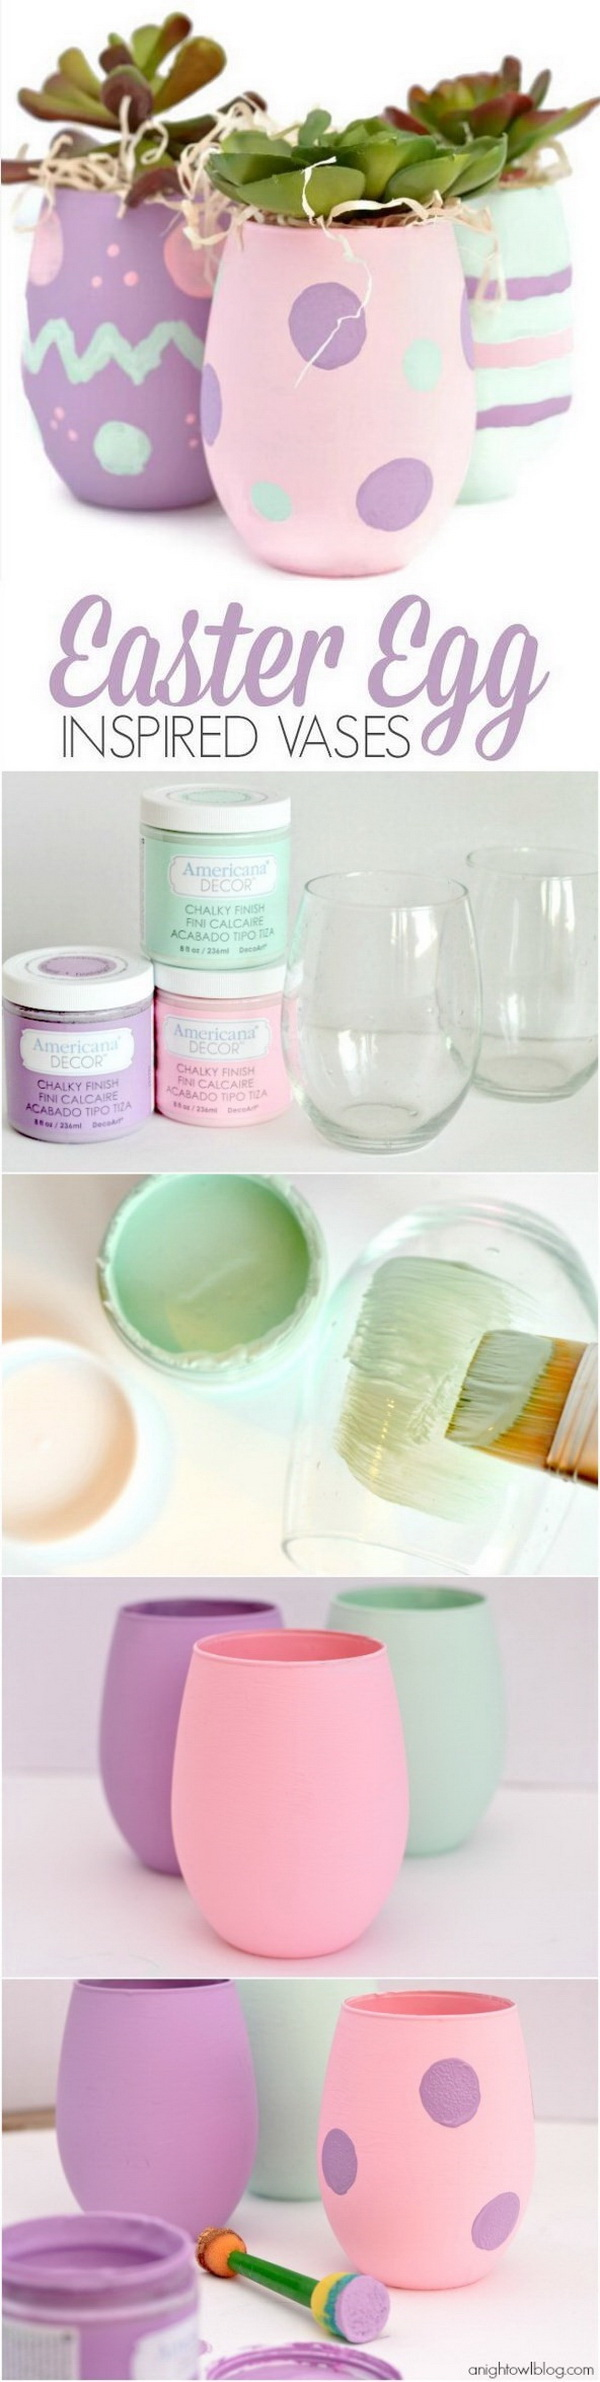 DIY Easter Decoration Ideas: Easter Egg Inspired Vases.